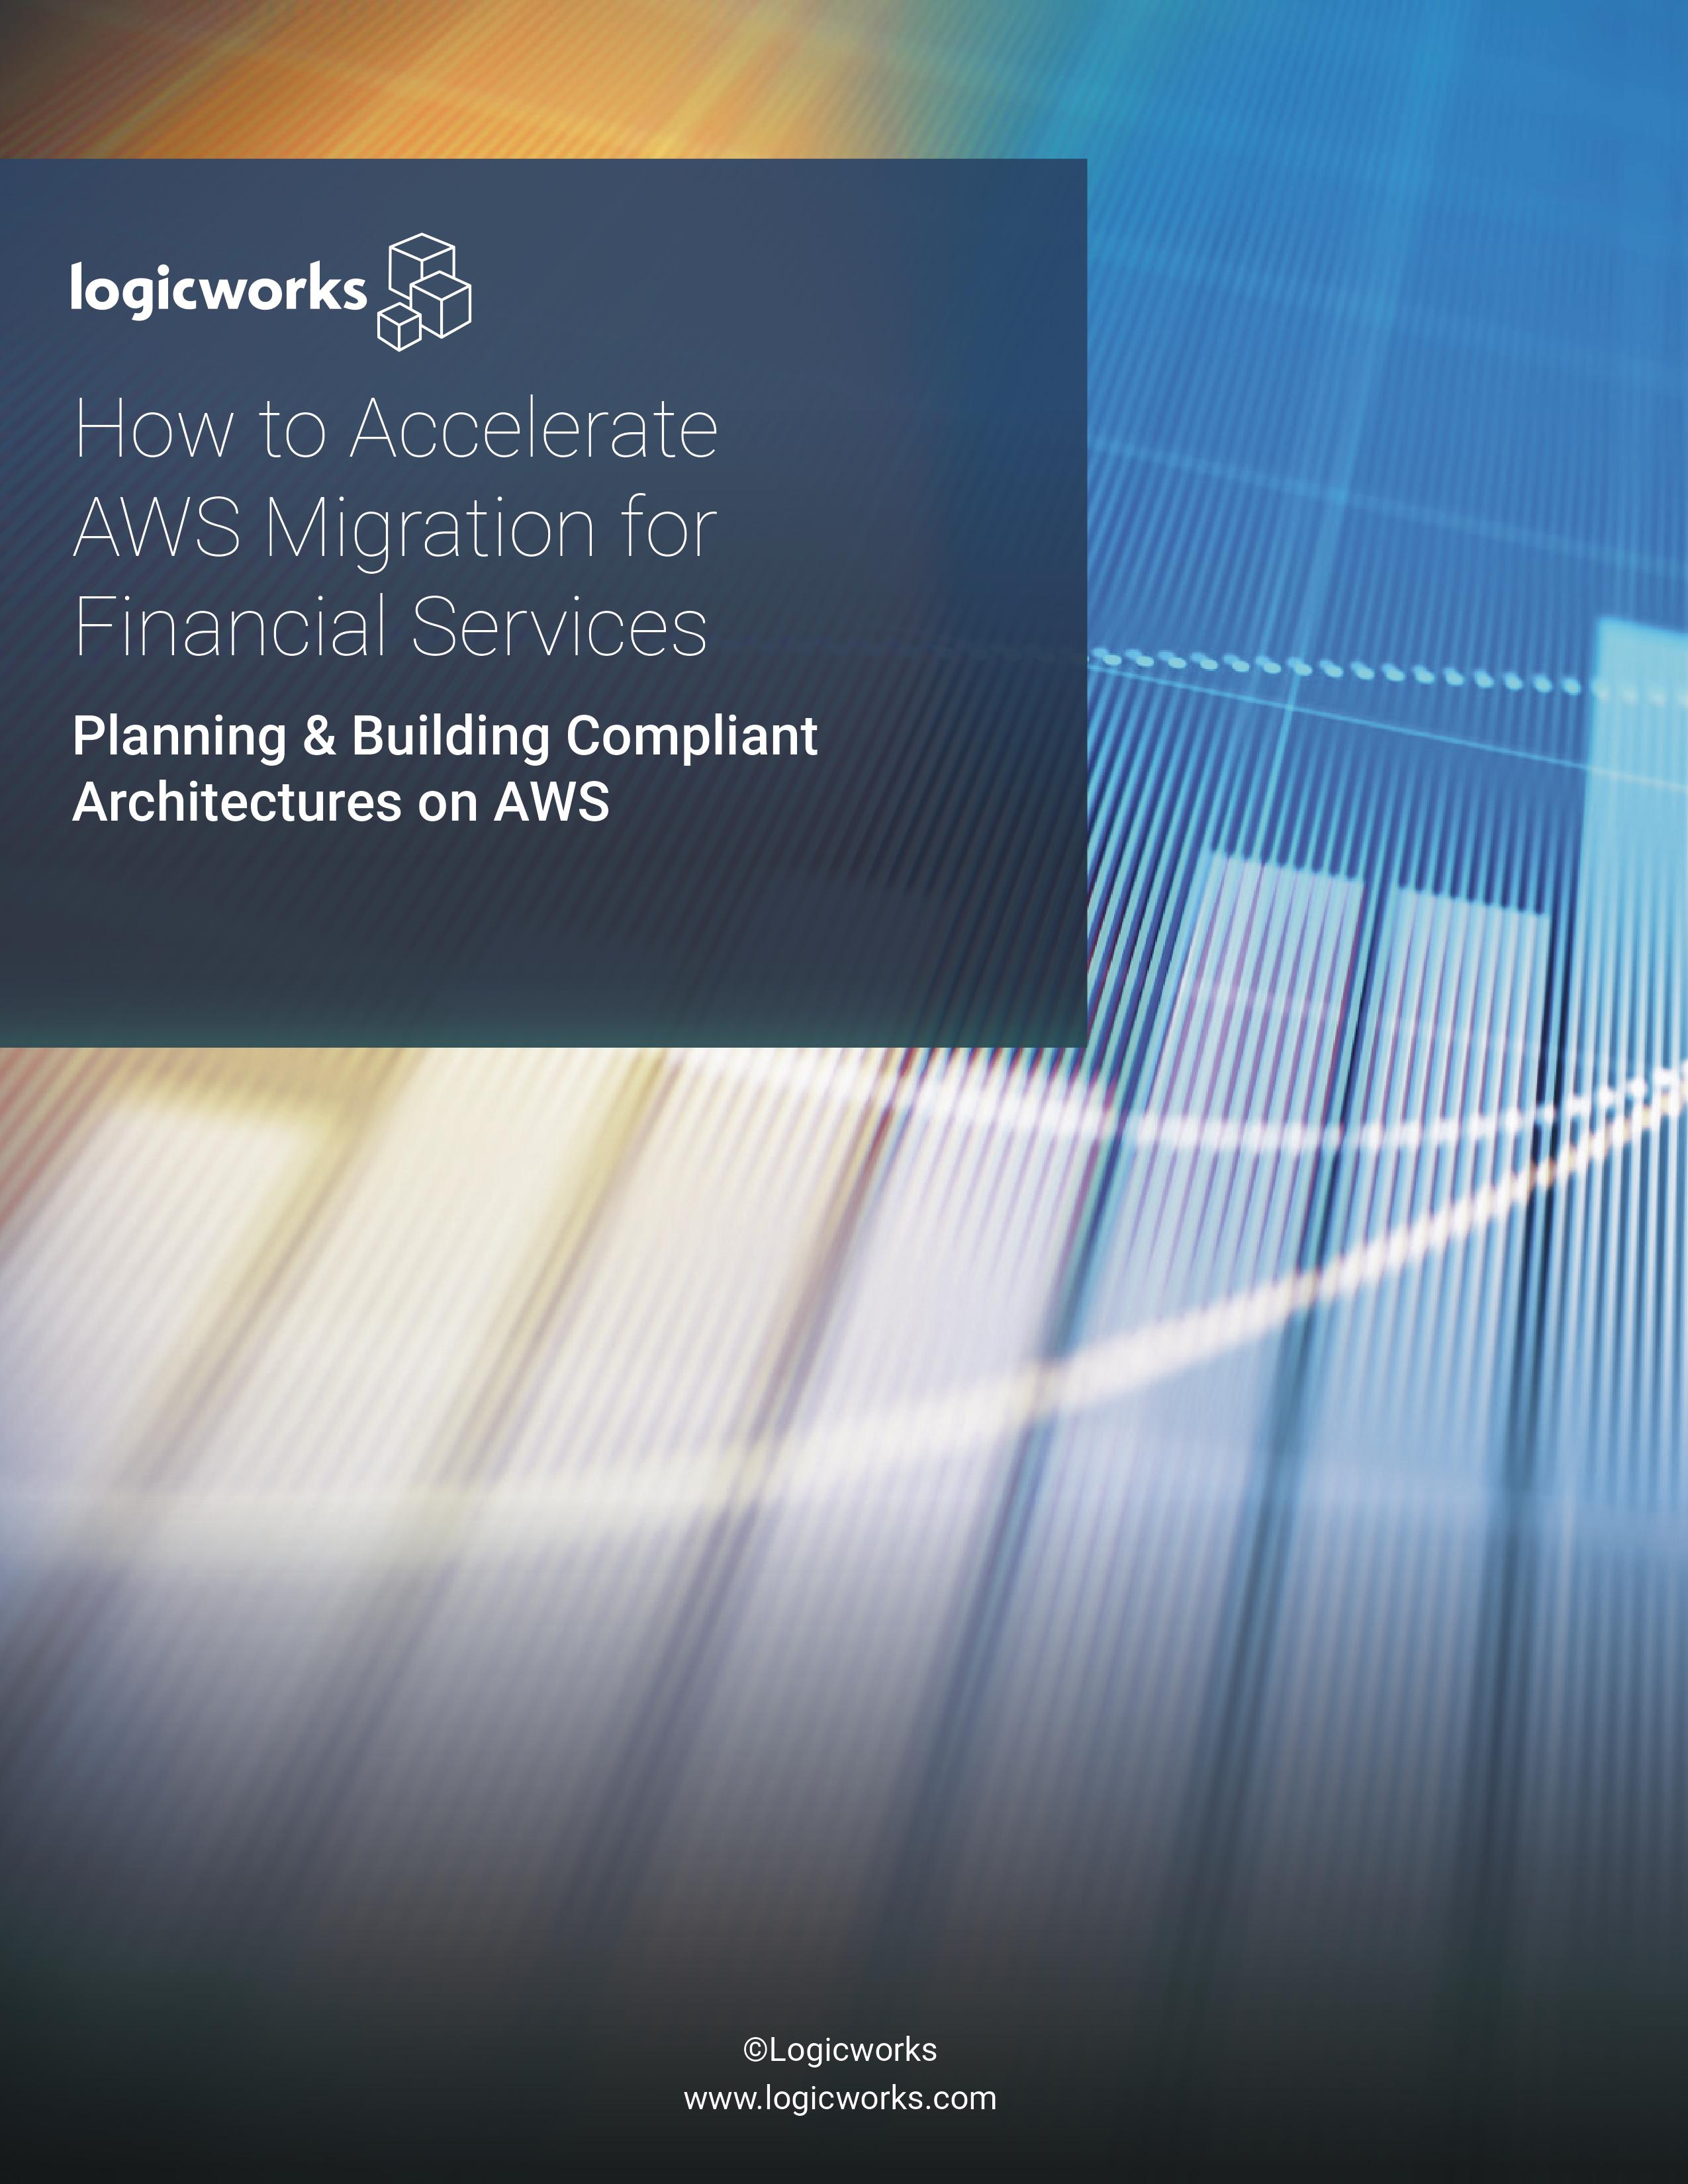 How to Accelerate AWS Migration (Financial Services)